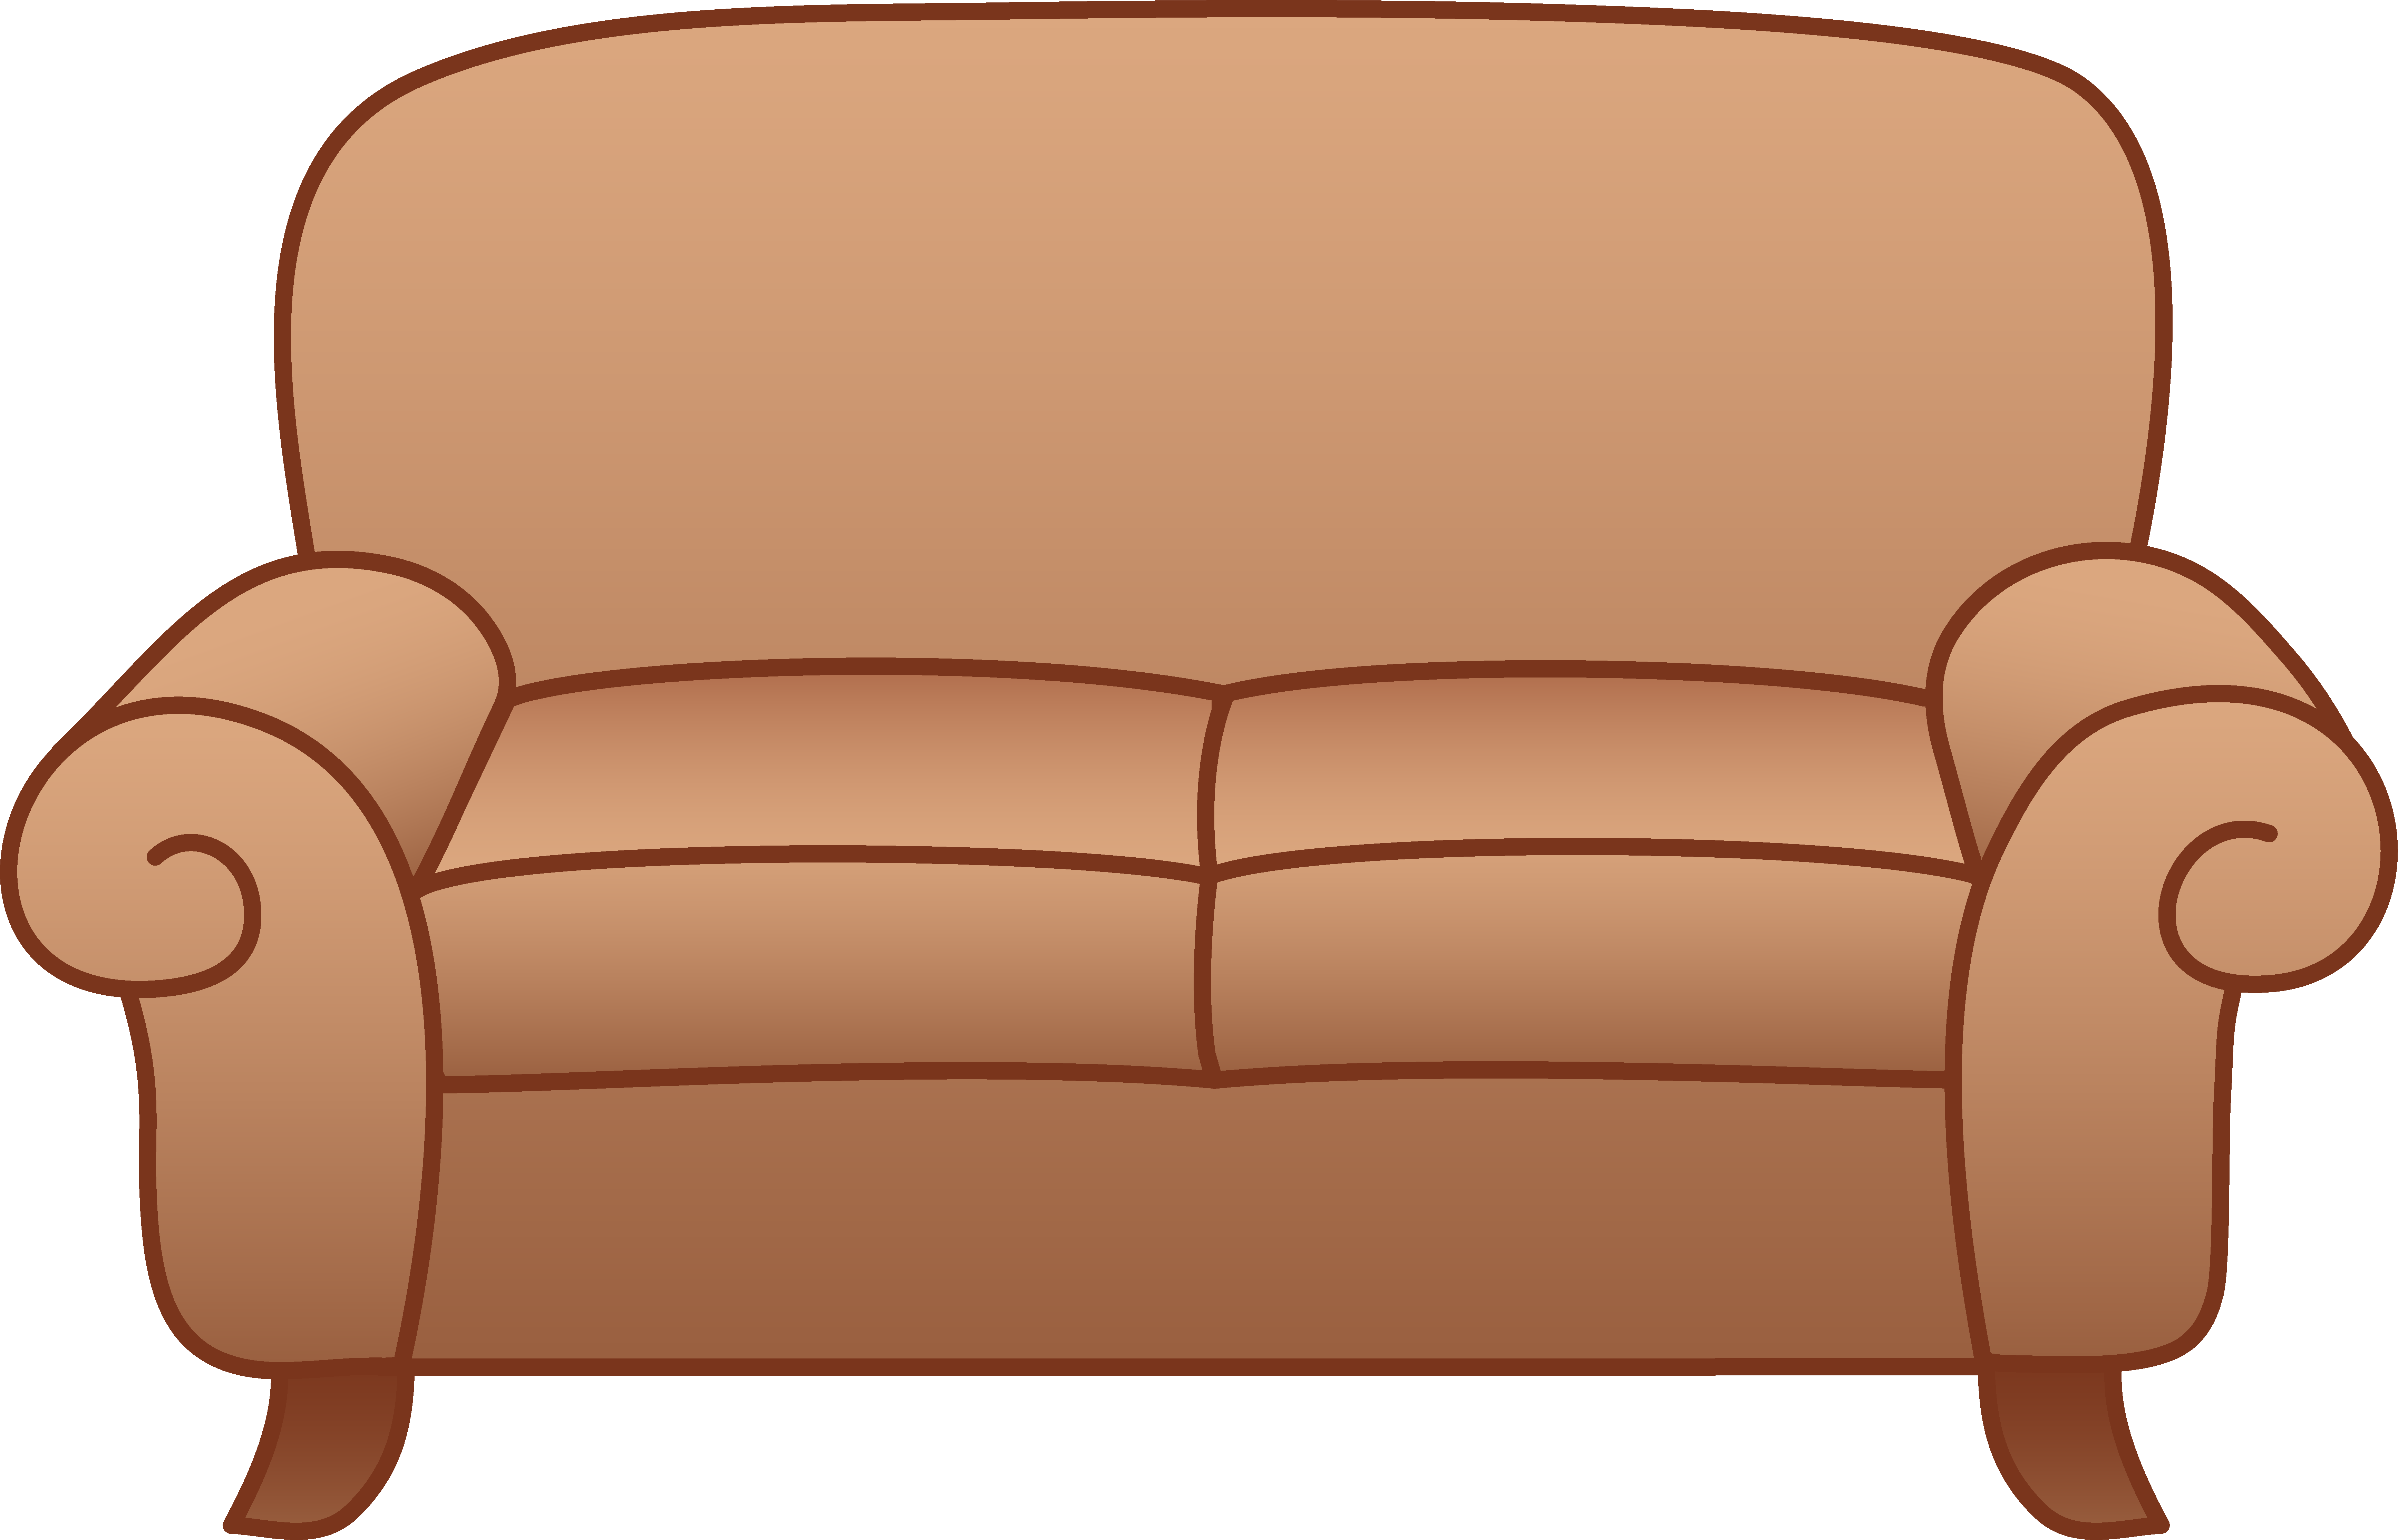 Dog on sofa clipart clip download couch-clipart-8TxneMgXc.png (6947×4462)   2016-2017 African Art Room ... clip download